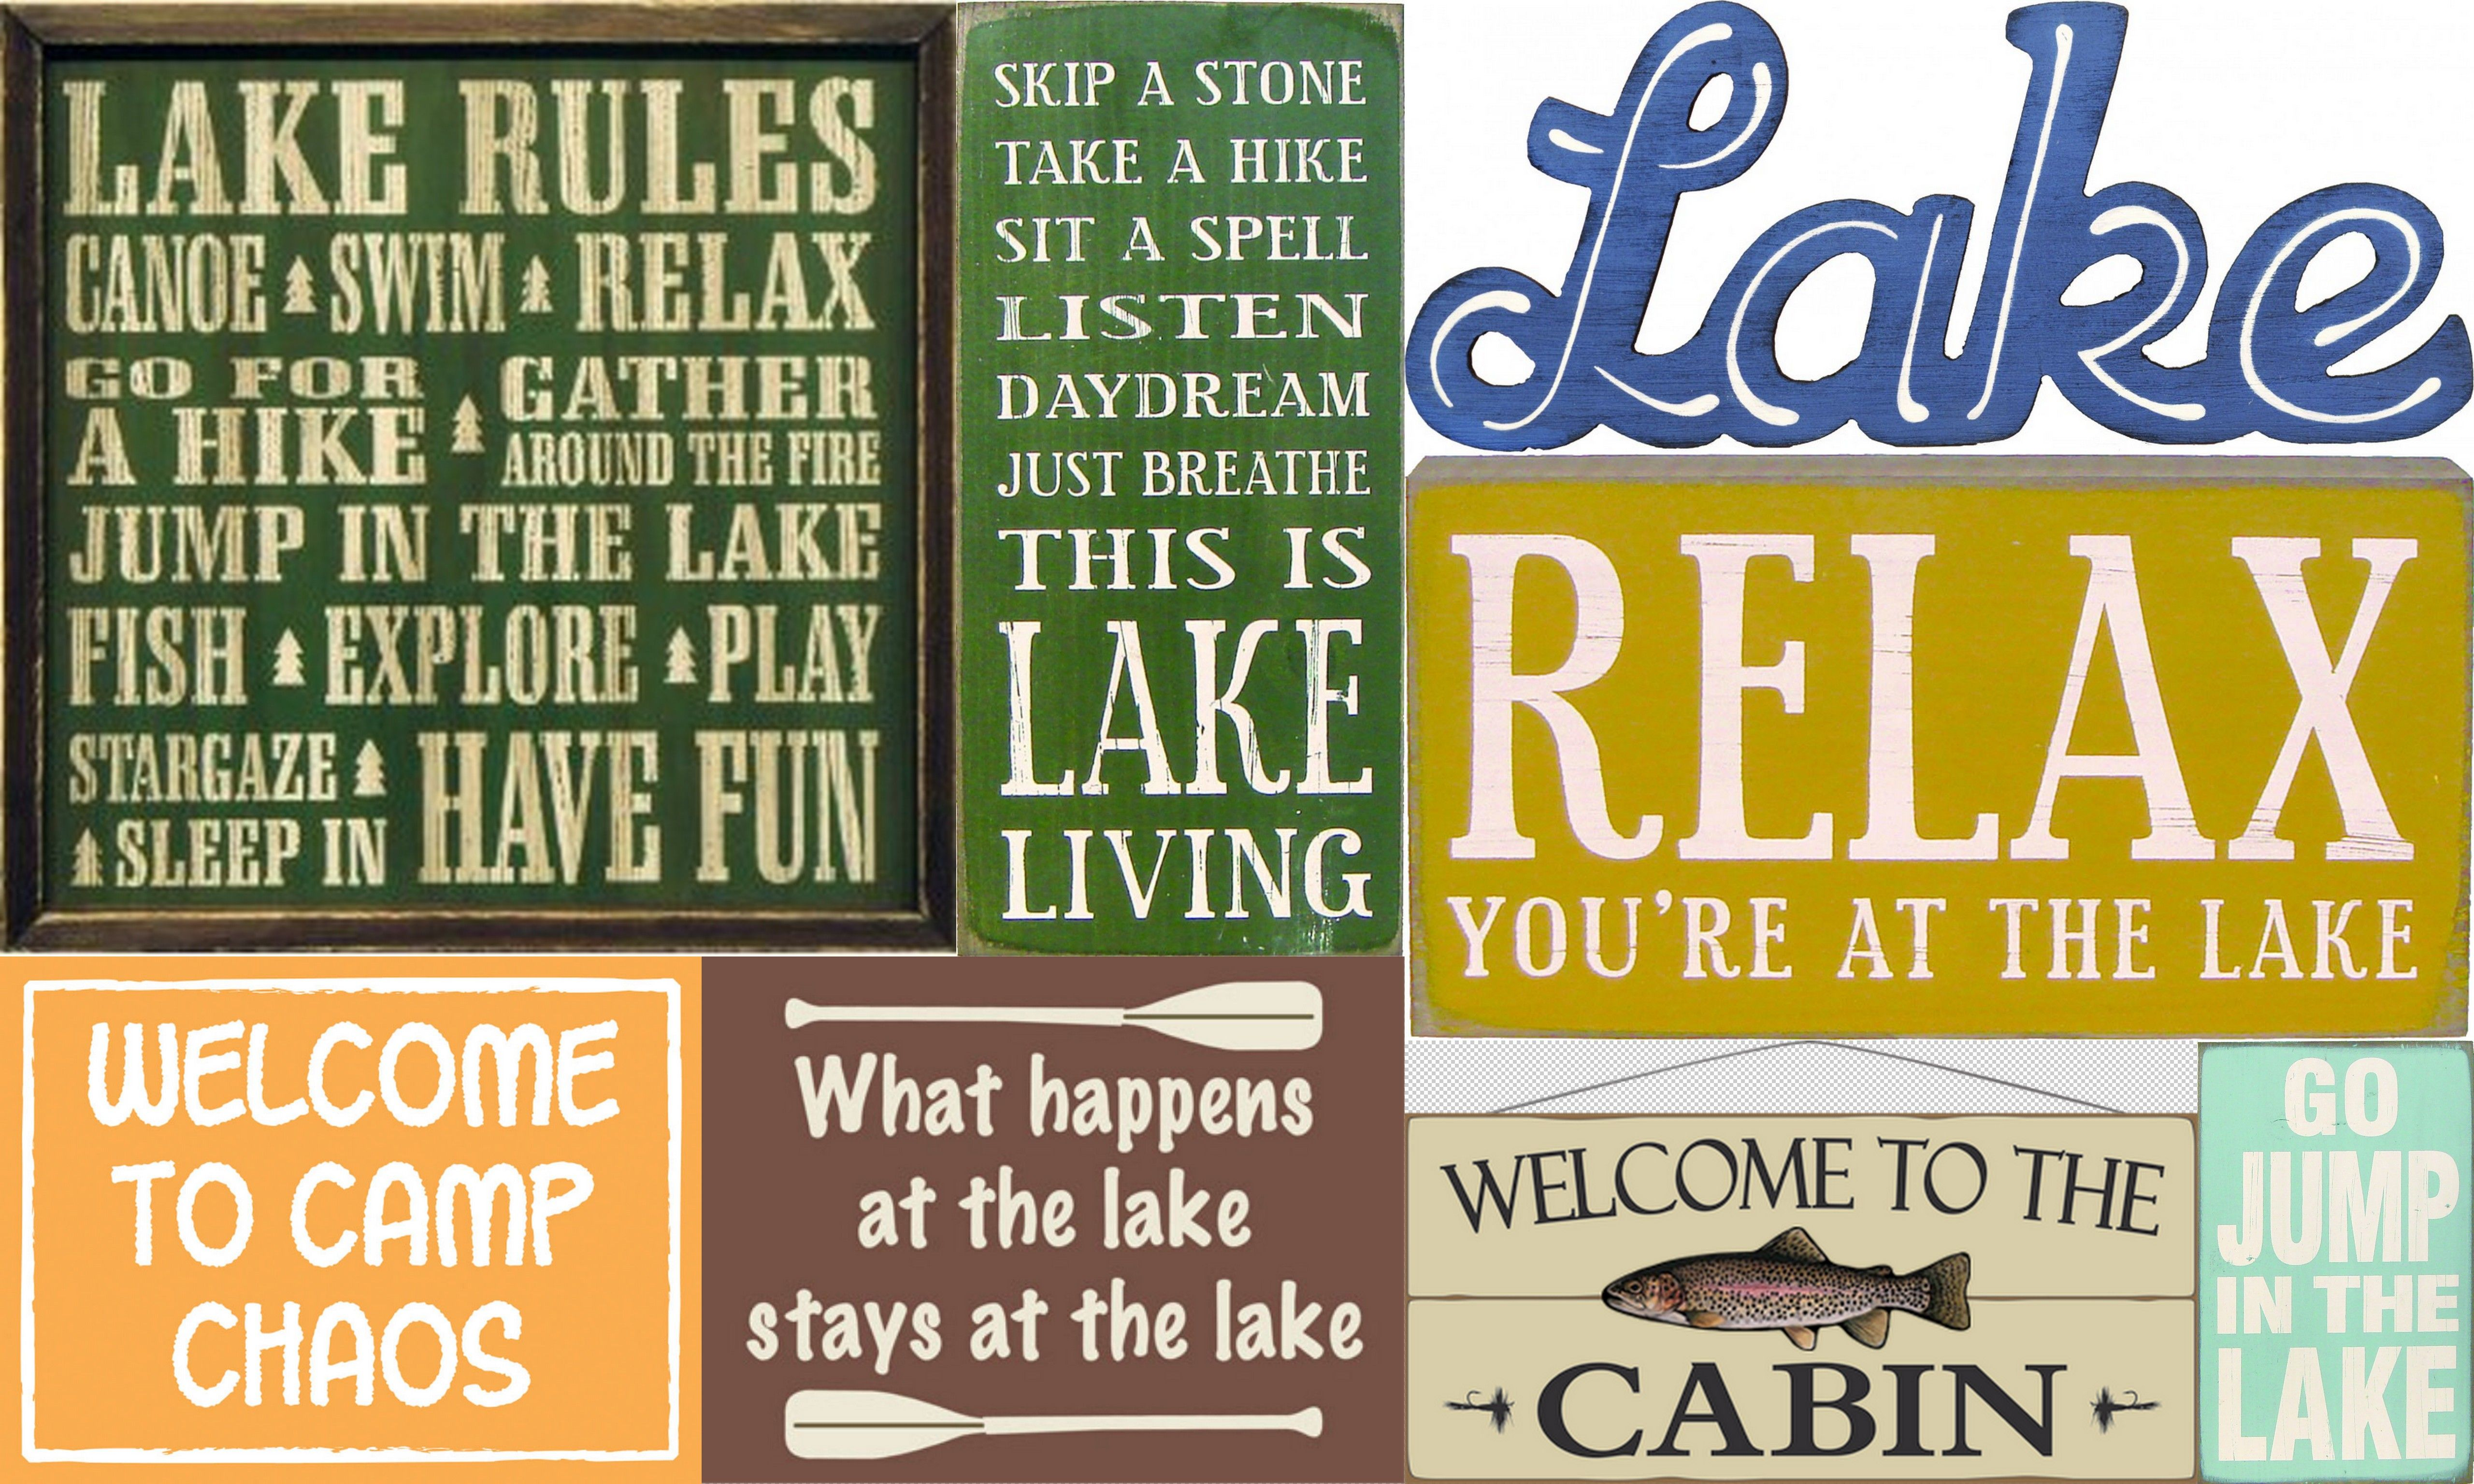 Funny Camping Quotes And Sayings Bc Collages3 Jpg Camping Quotes Funny Lake Quotes Camping Humor